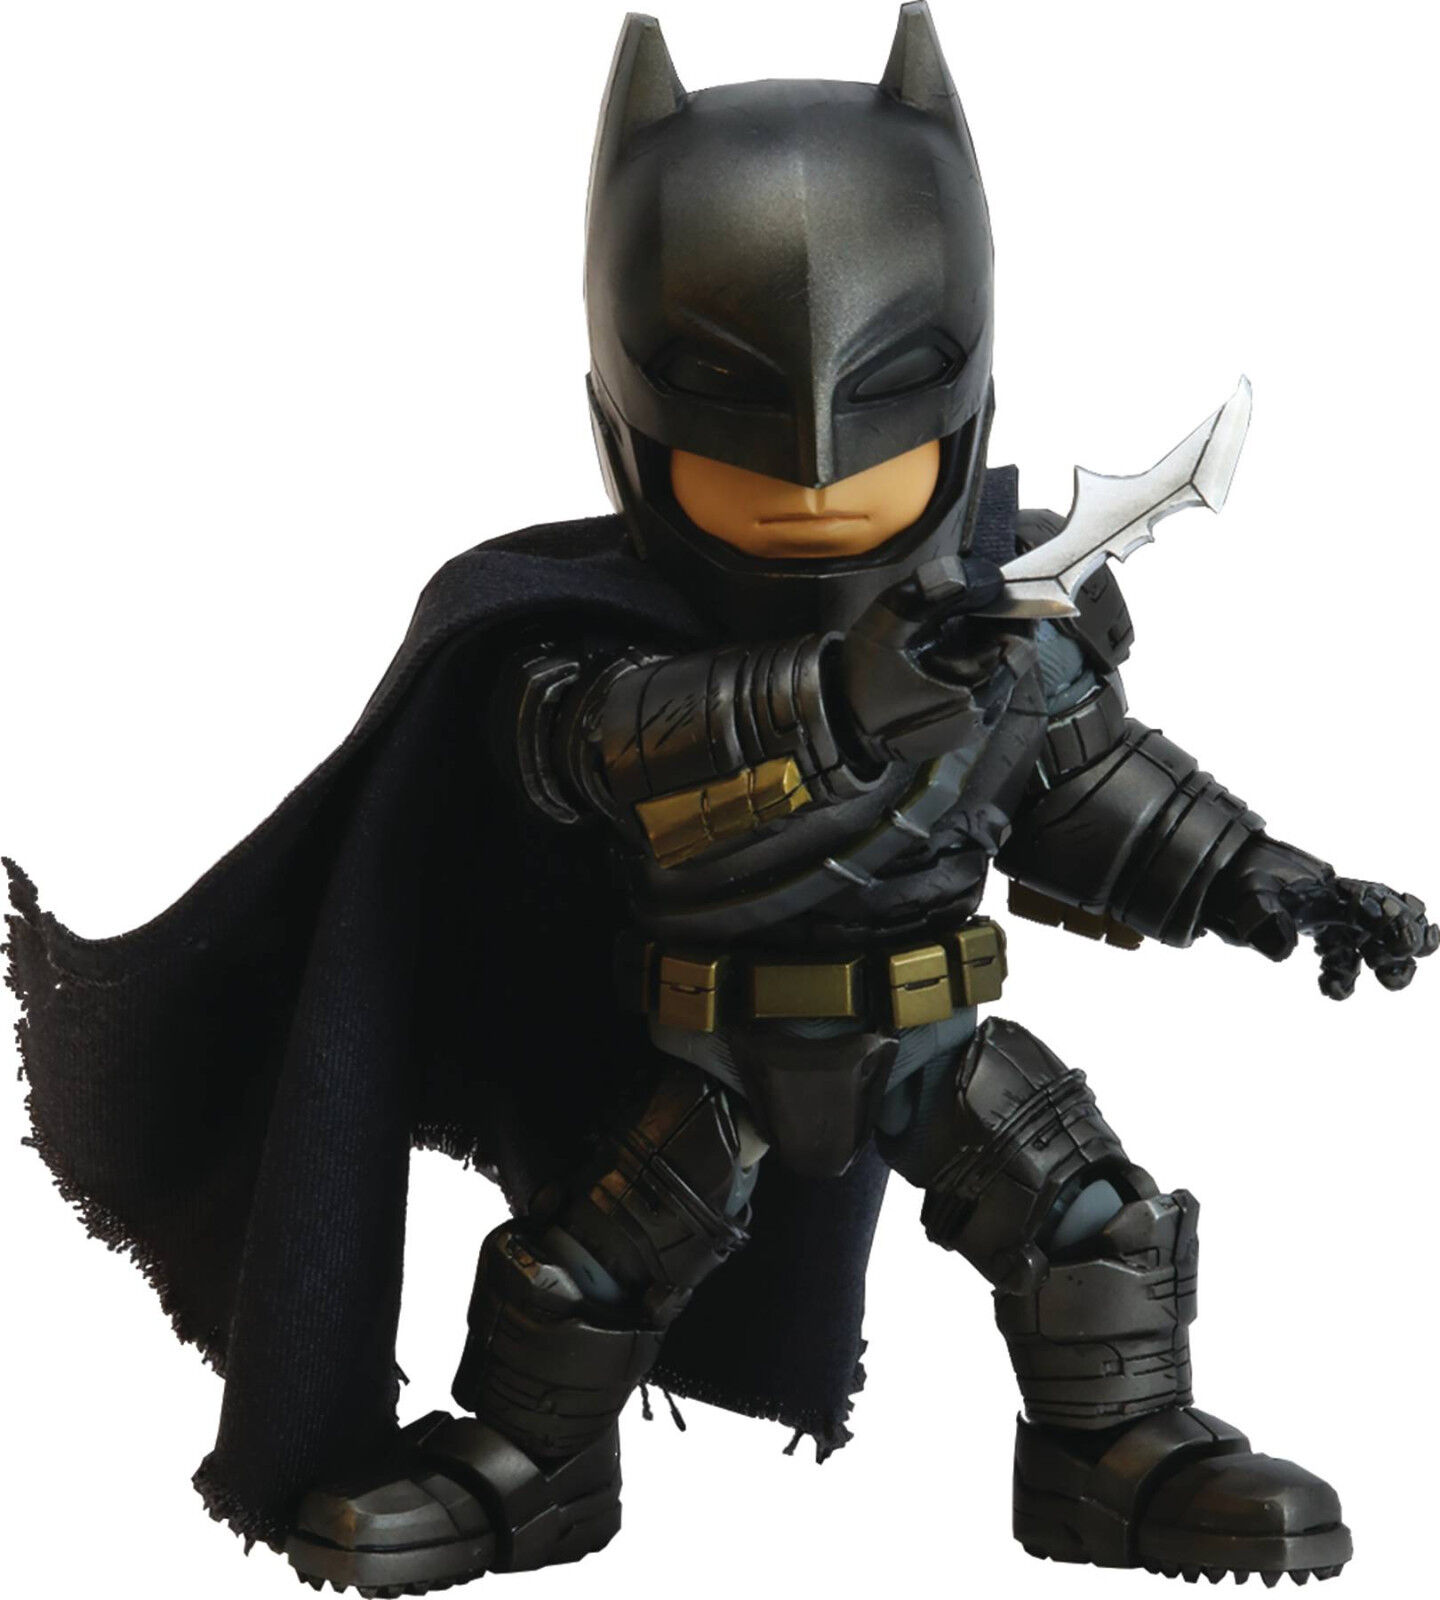 BvS Dawn of Justice Justice Justice Batman Action Figure Herocross Hybrid Metal Figuration New 529b2f